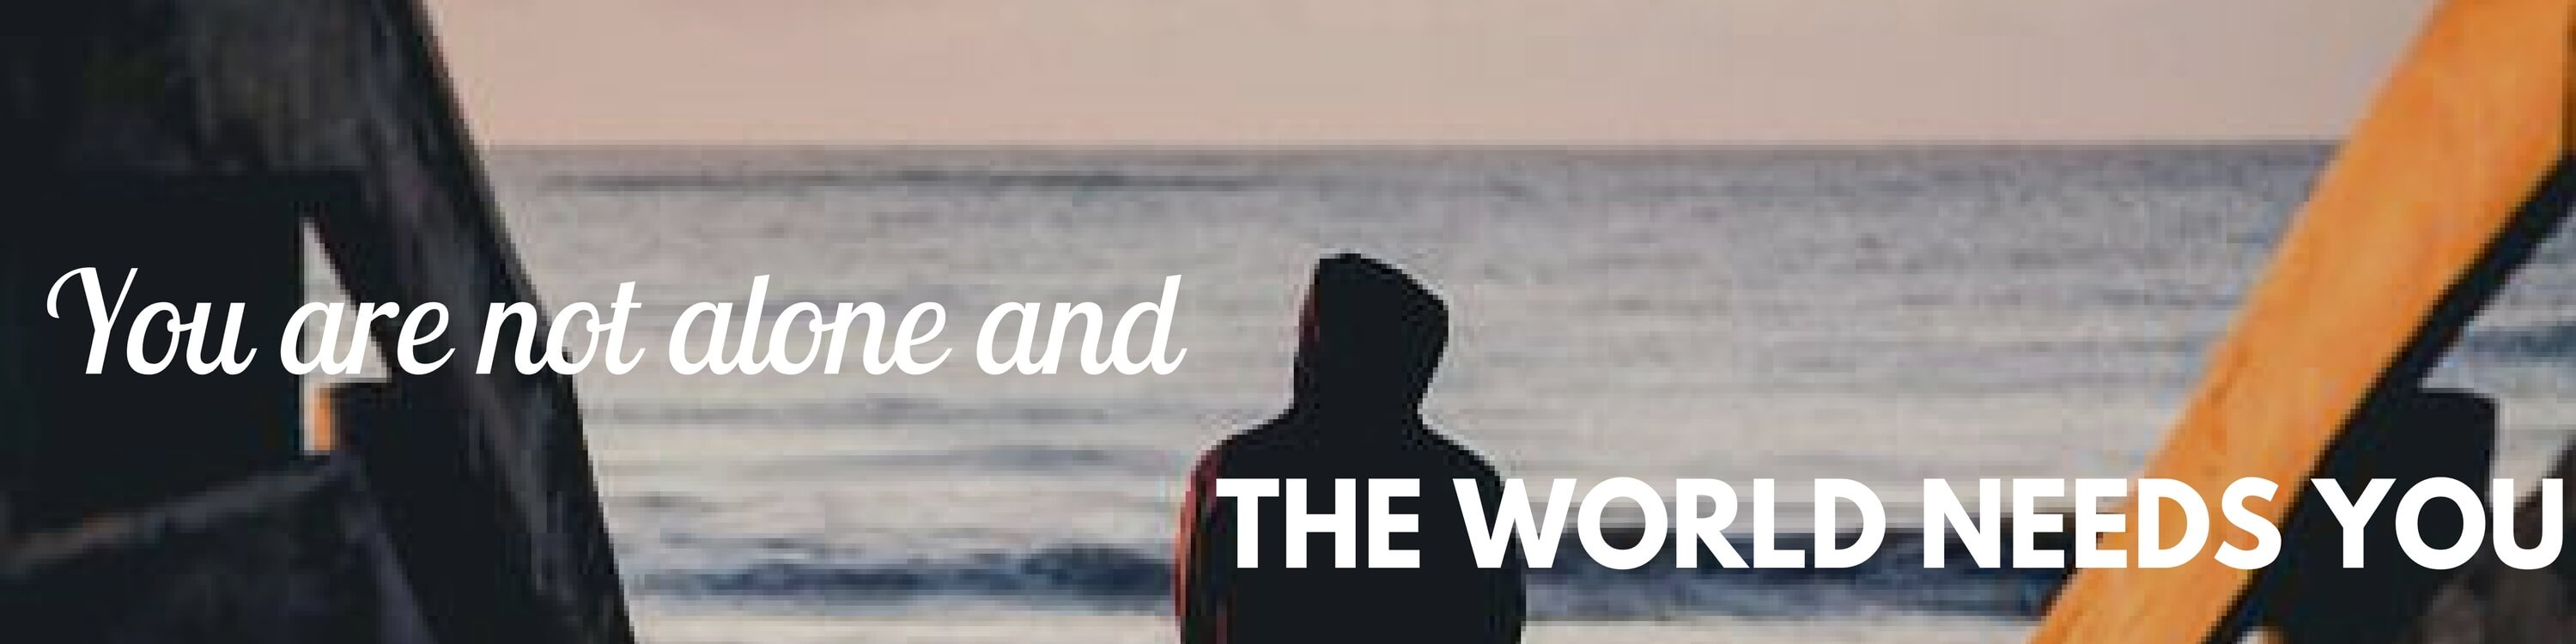 "Quote over a person standing by the ocean, ""You are not alone, the world needs you""."